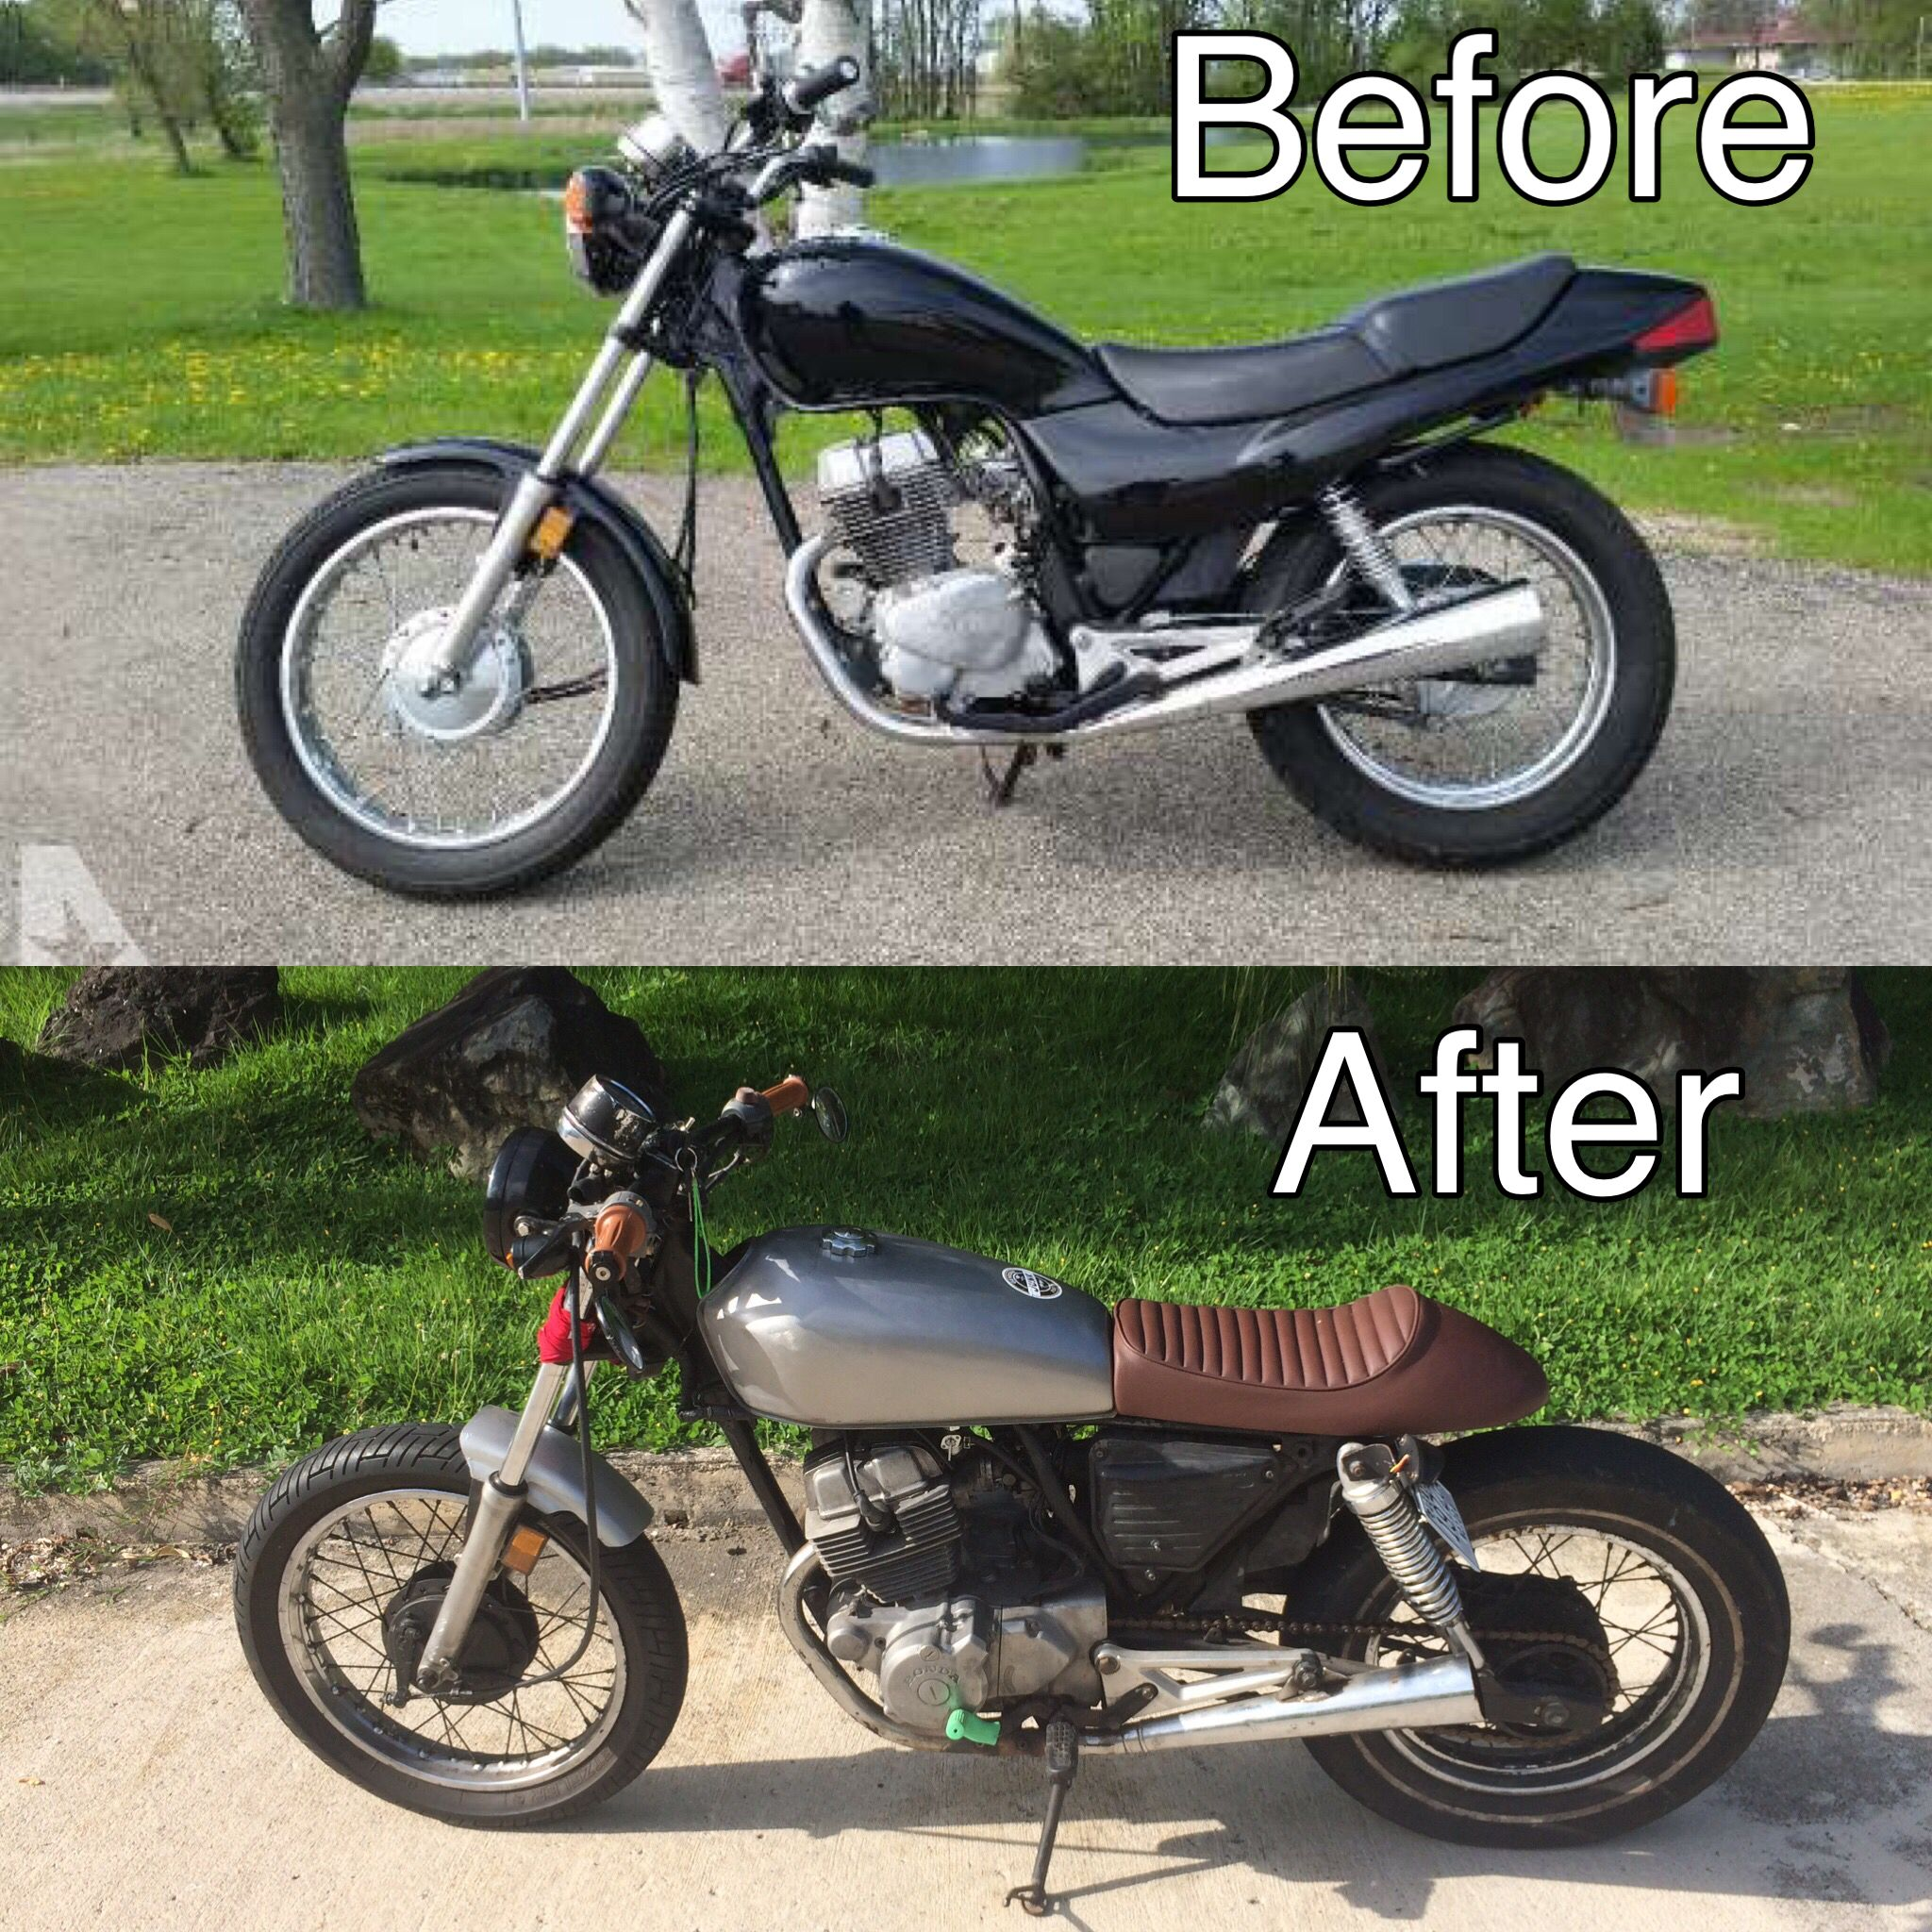 750 Cafe Racer This Is My First Project Honda Cb250 Nighthawk Lots Of Fun Next